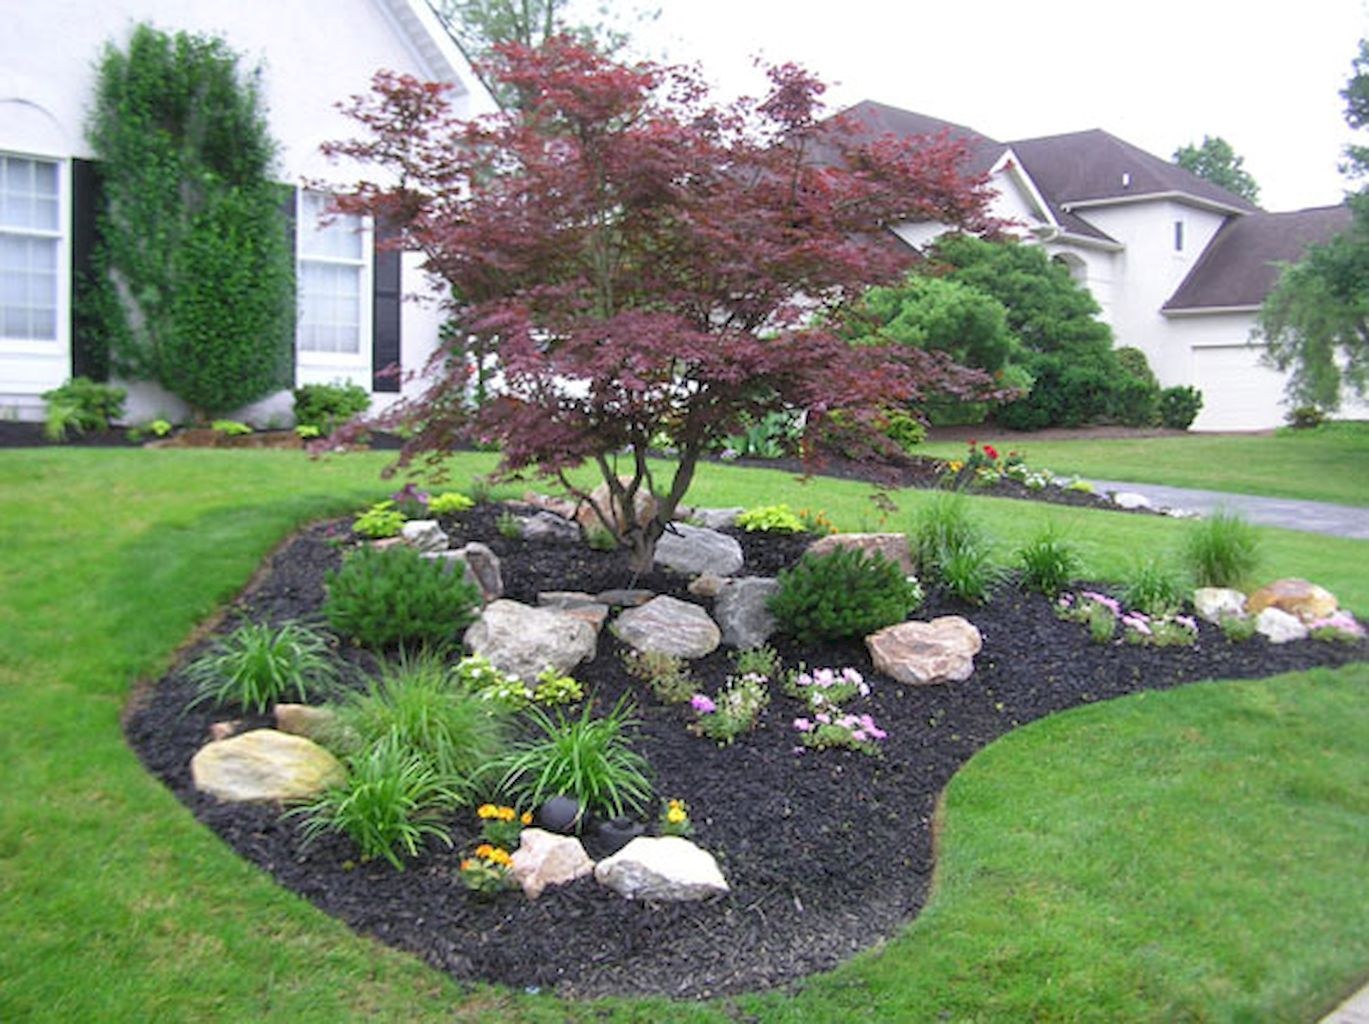 Adorable 25 Beautiful Front Yard Landscaping Ideas On A Budget Https Roomadness Com 20 Large Yard Landscaping Front Yard Landscaping Design Front Yard Garden